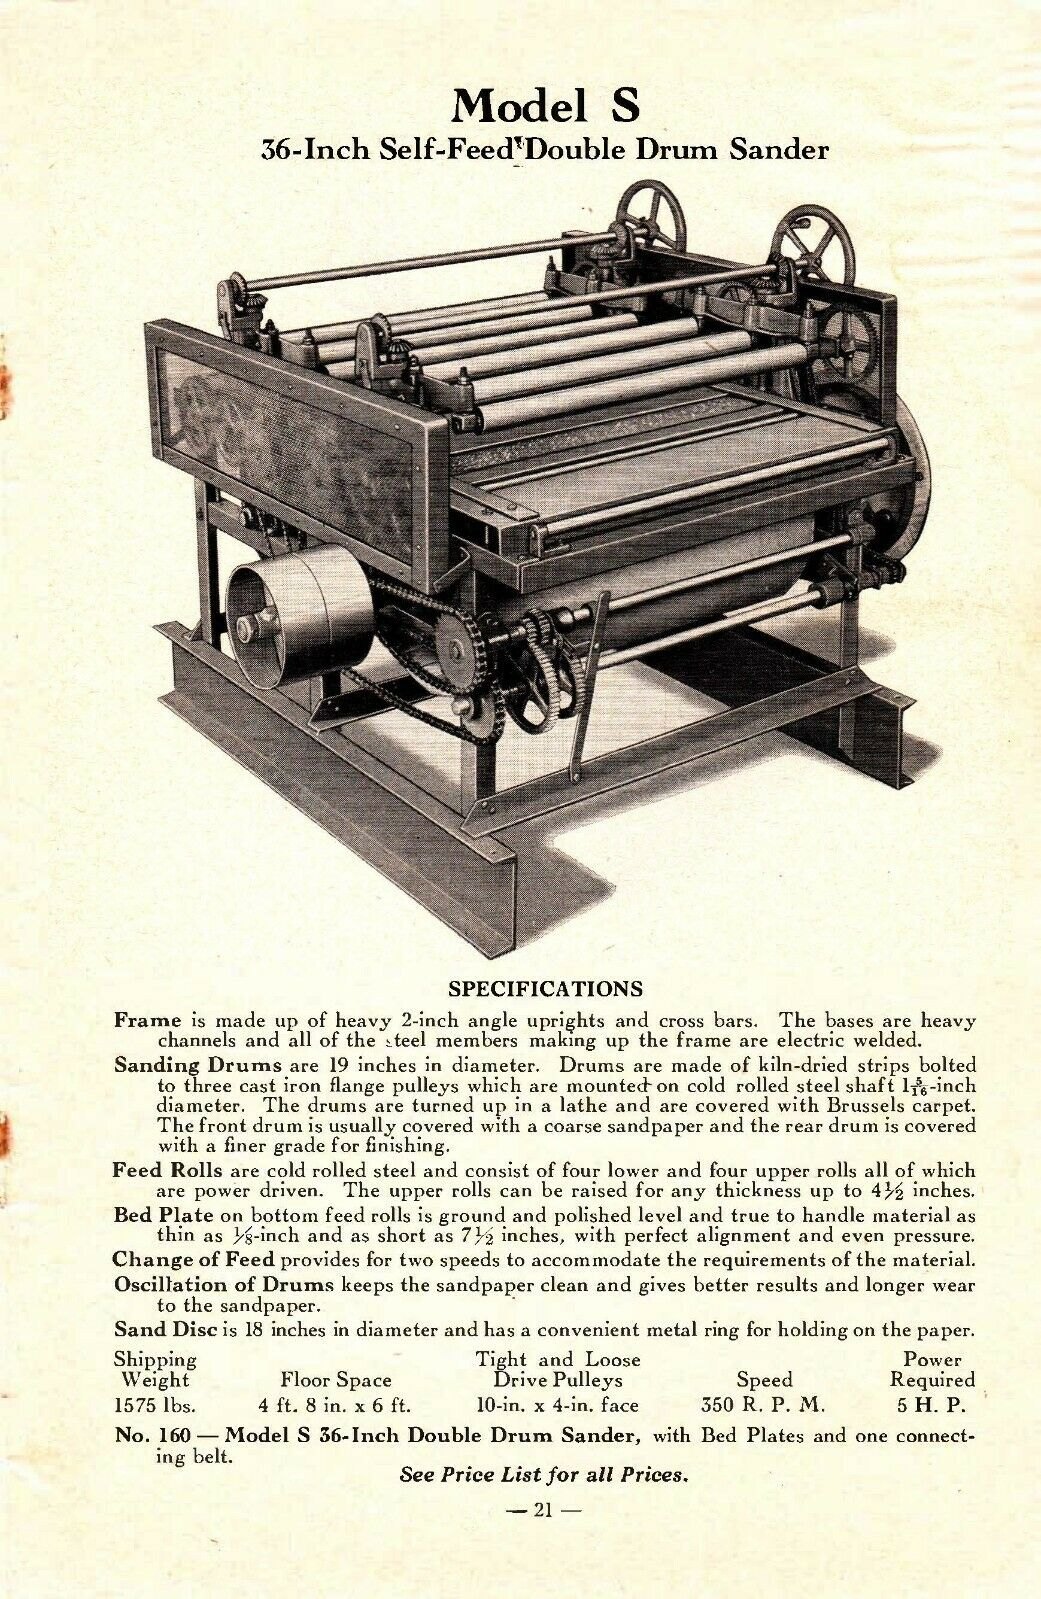 Parks Woodworking Woodworking Machines Price List Catalog No. 42 1942 - $6.97